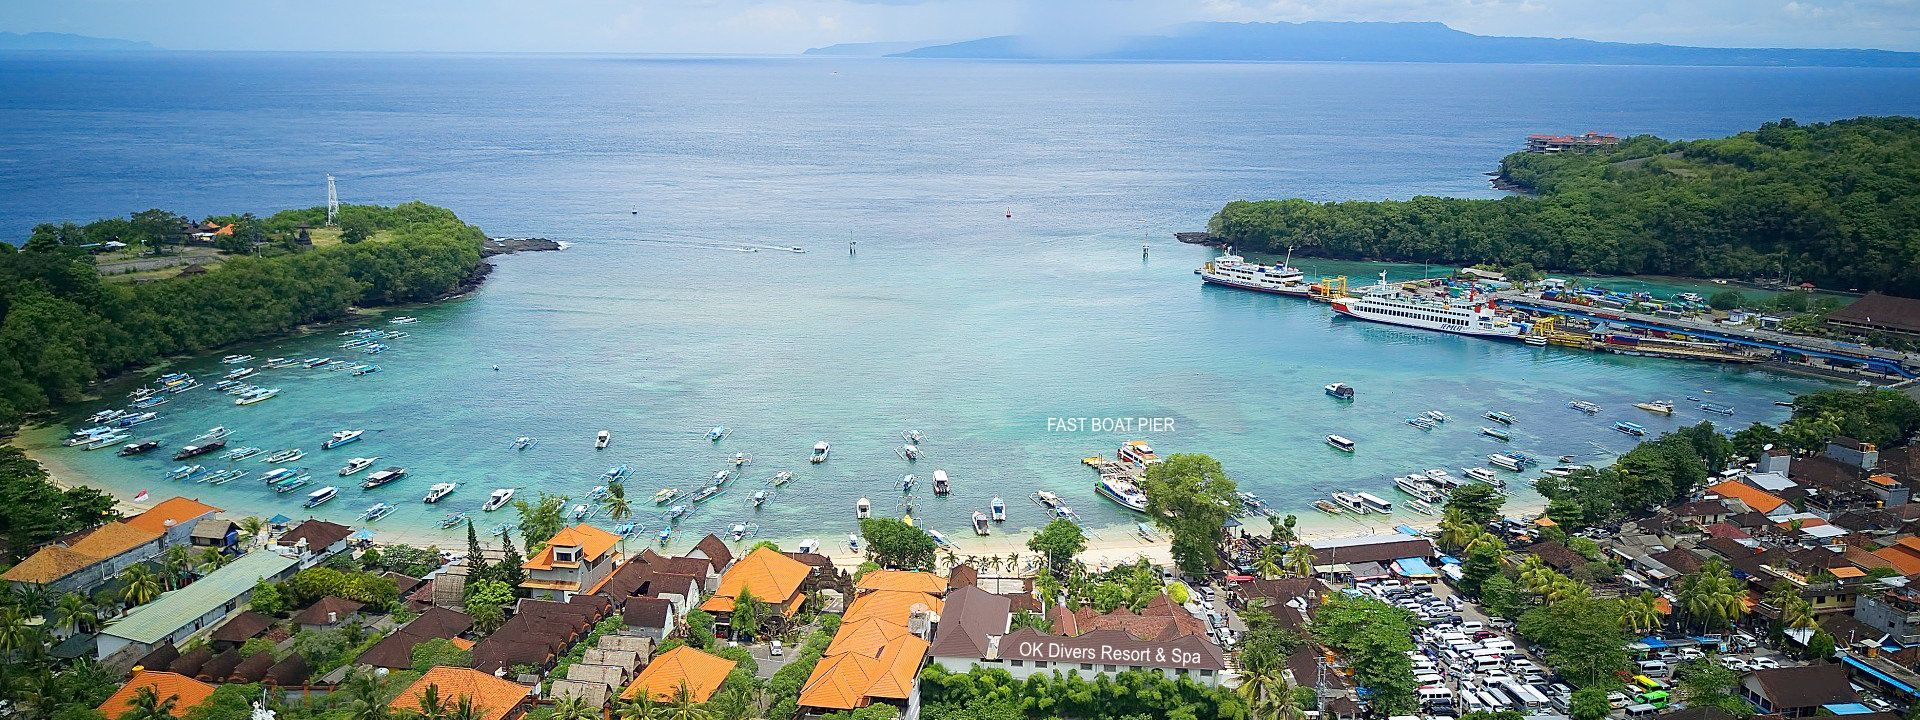 Bali to Gili Islands - Bali Tour Vacation Special Package